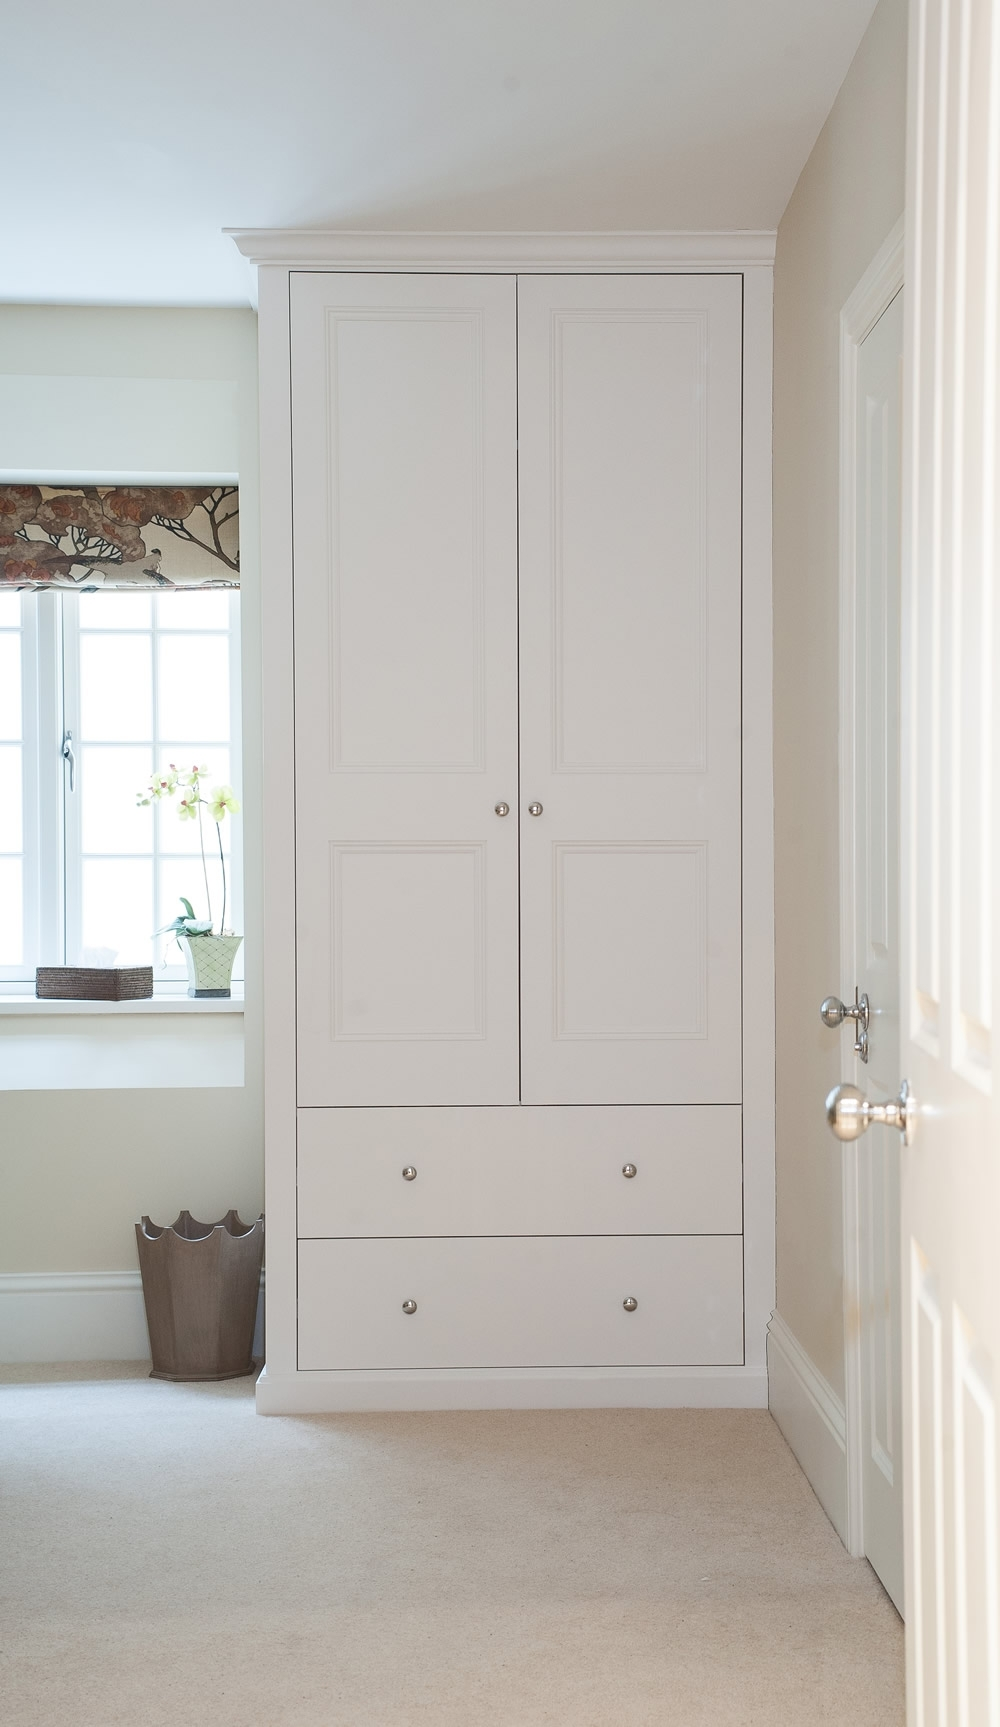 London Alcove Company Regarding Trendy Drawers For Fitted Wardrobes (View 13 of 15)